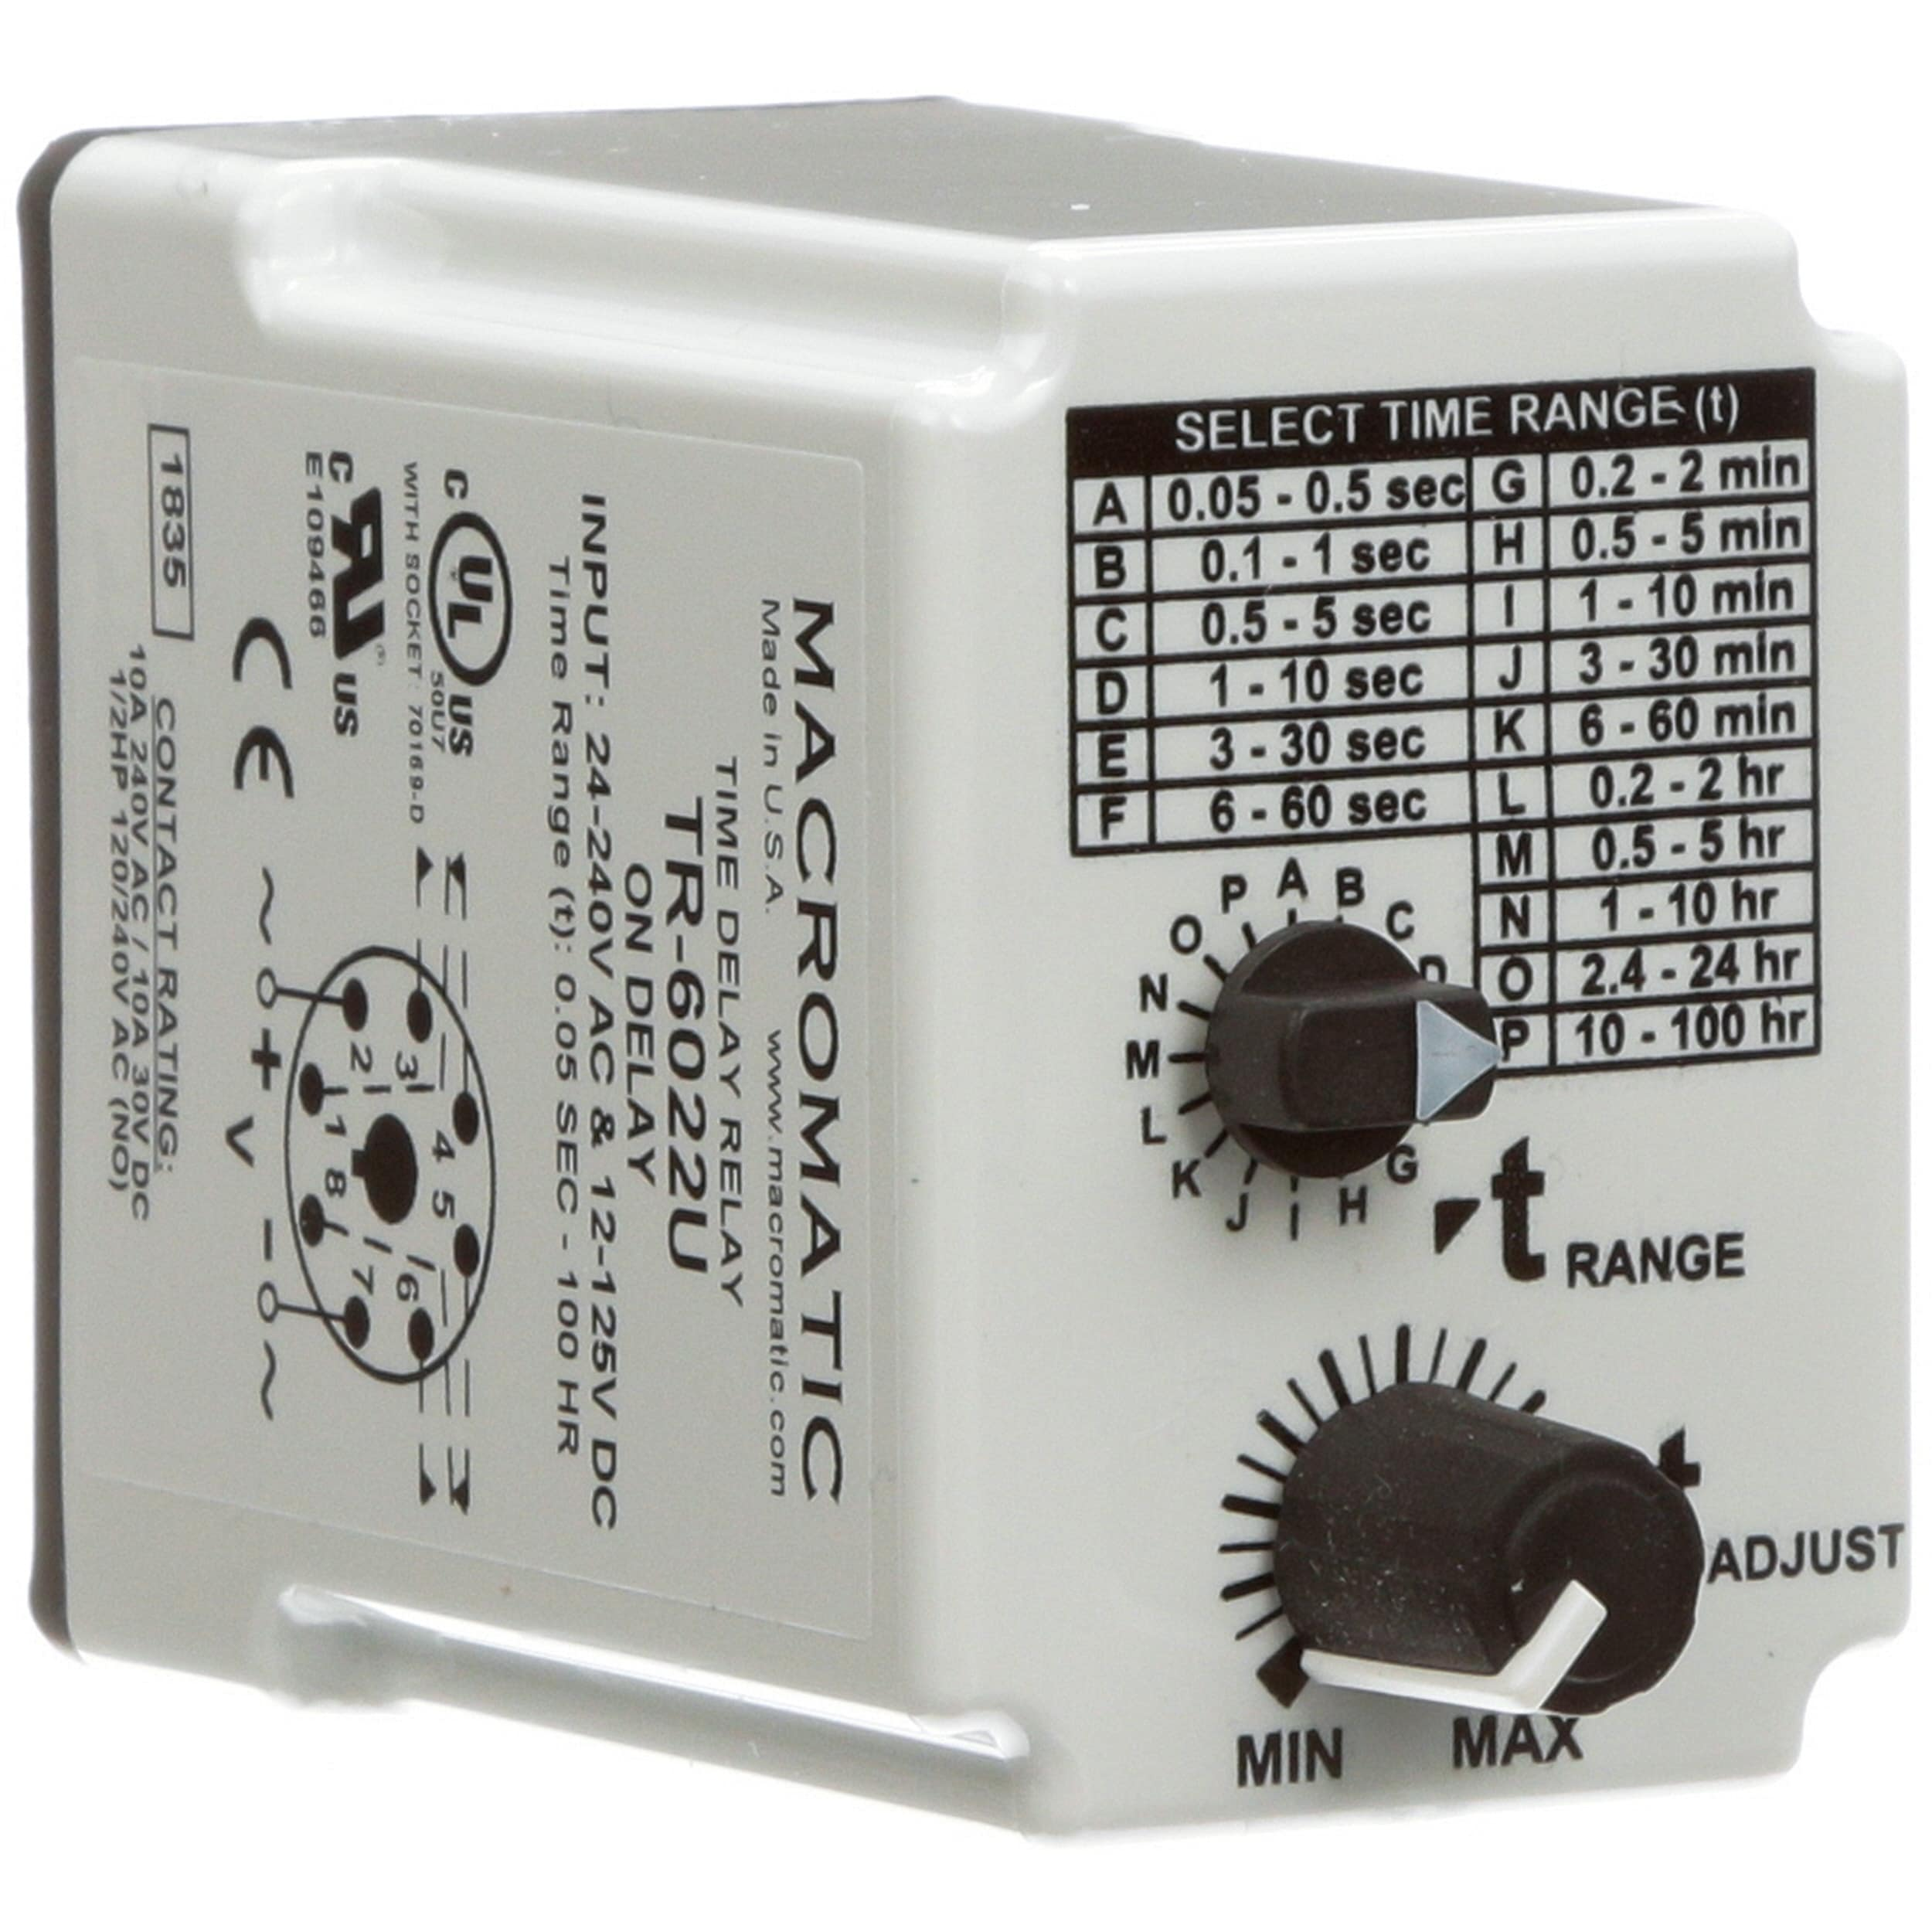 Macromatic Tr 6022u Time Delay Relay Plug In On 24 A C Compressor Wiring Diagram Pot 240vac 12 125vdc 005s 100h Allied Electronics Automation